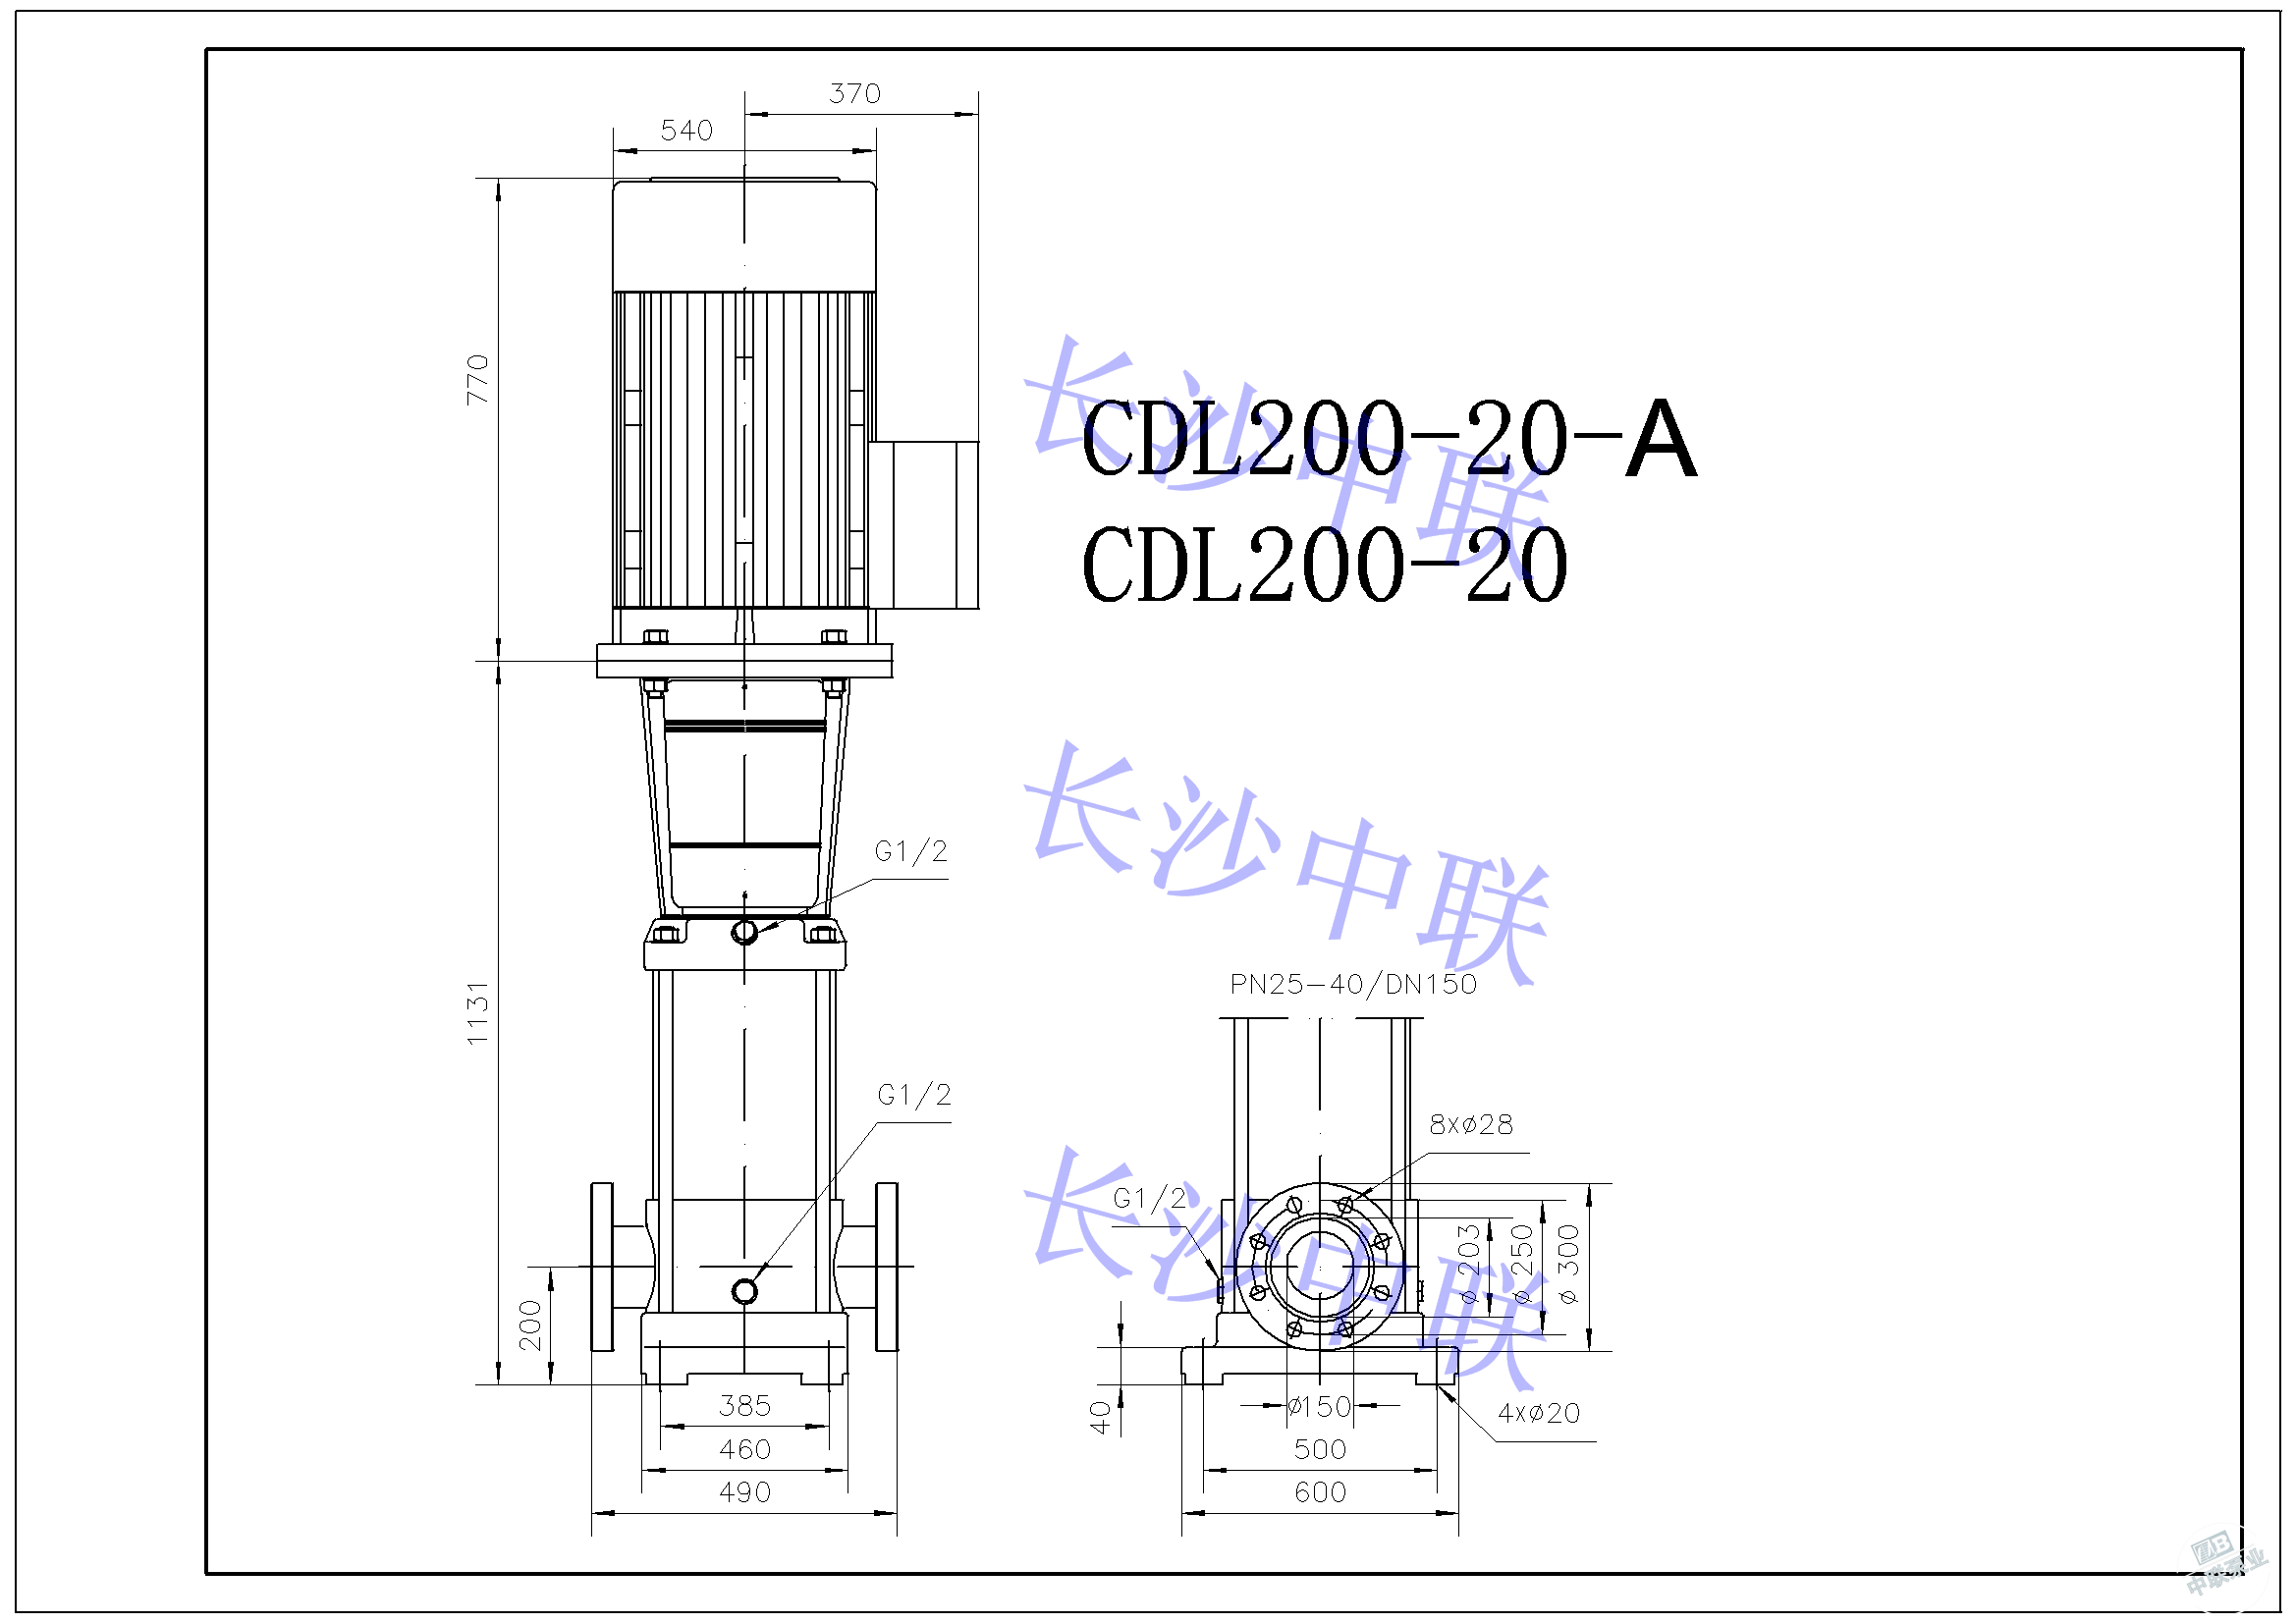 CDL200-20 multi-stage pump installation drawing